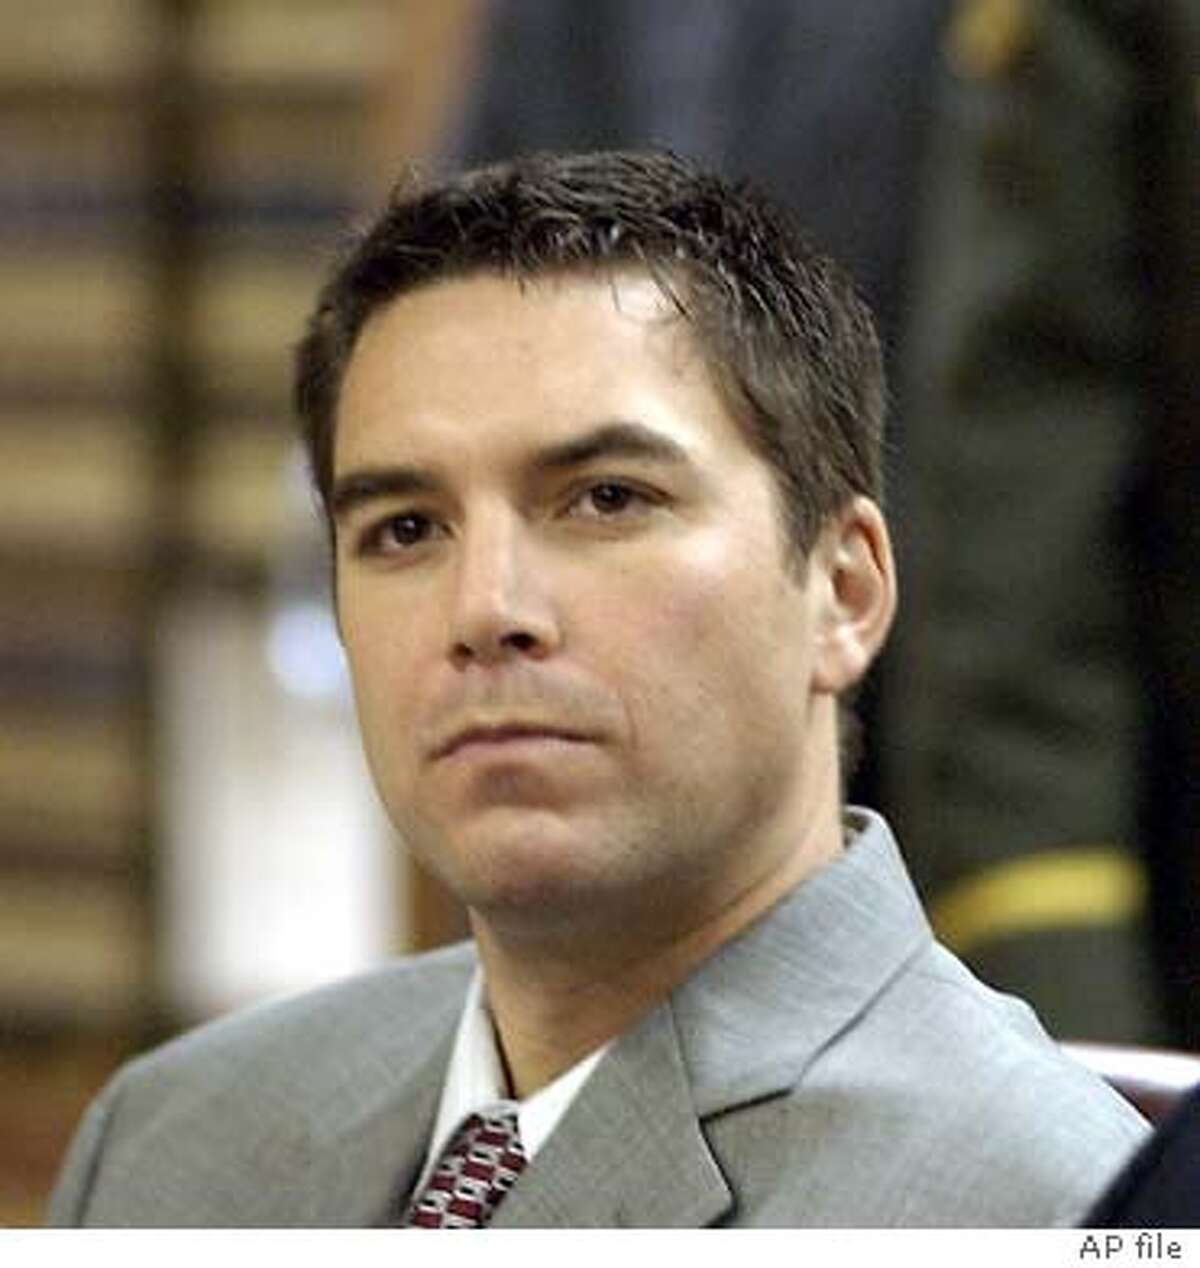 Scott Peterson is shown in a courtroom in Modesto, Calif., Tuesday, Jan. 20, 2004, during a change-of-venue hearing in his trial. The judge in the murder case against Scott Peterson moved the trial about 90 miles away to the San Francisco Bay area Tuesday because of hostility toward Peterson in his dead wife's hometown. (AP Photo/Al Golub, Pool) Scott Peterson will be tried in San Mateo County for the slaying of his wife and unborn son.